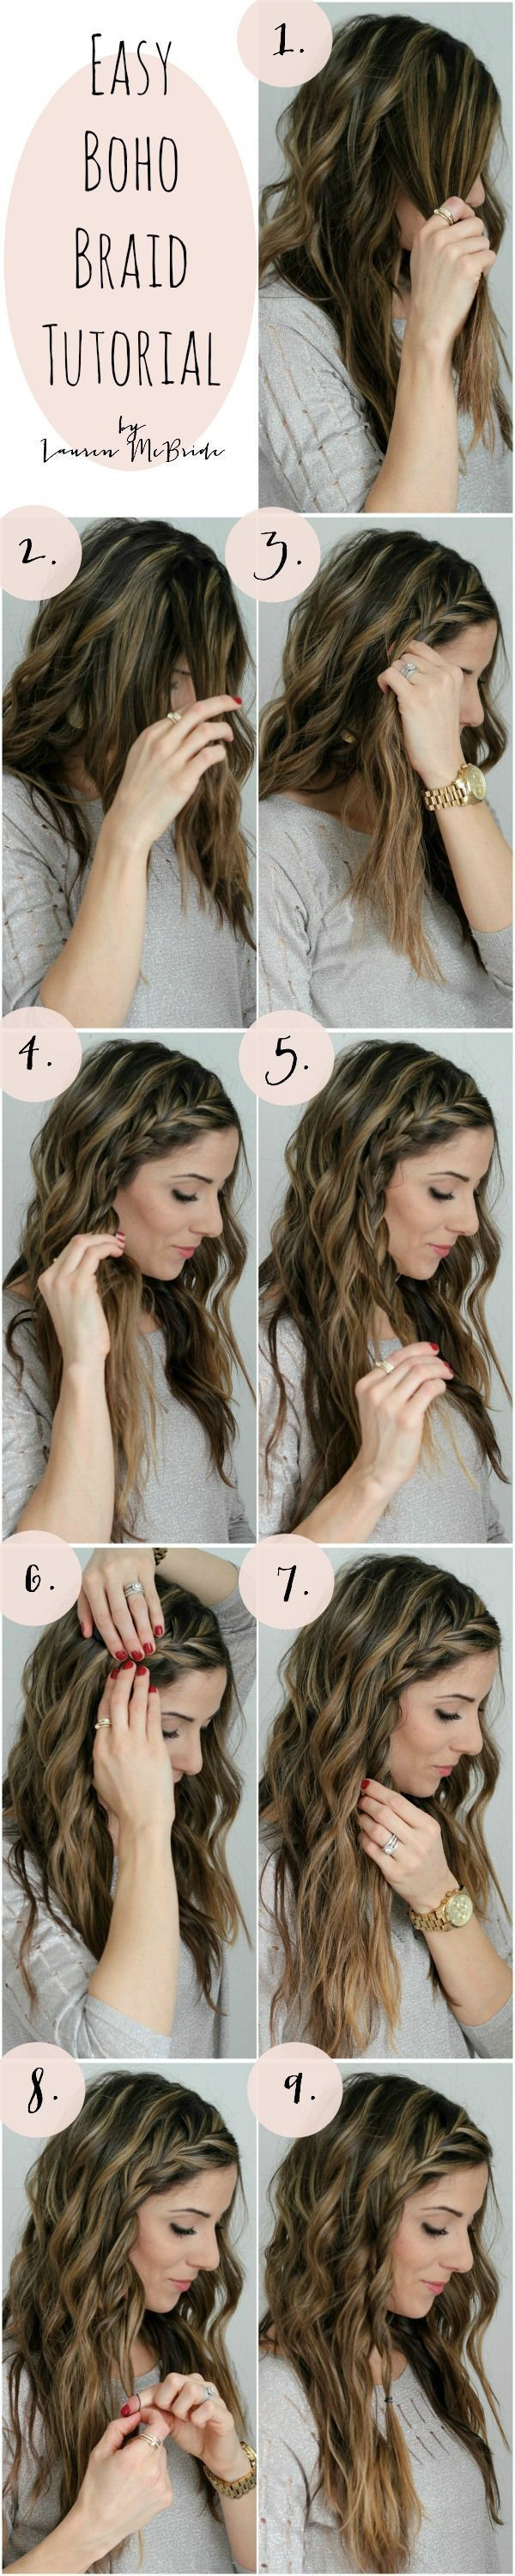 What hair do you want to wow this spring? Long curls or straight look? Why not just play tricks on your long hair? Spring is a right time for every girl to glam a braided hair. Take off your winter hat and enjoy the breezy of spring. We are here to offer you many a[Read the Rest]